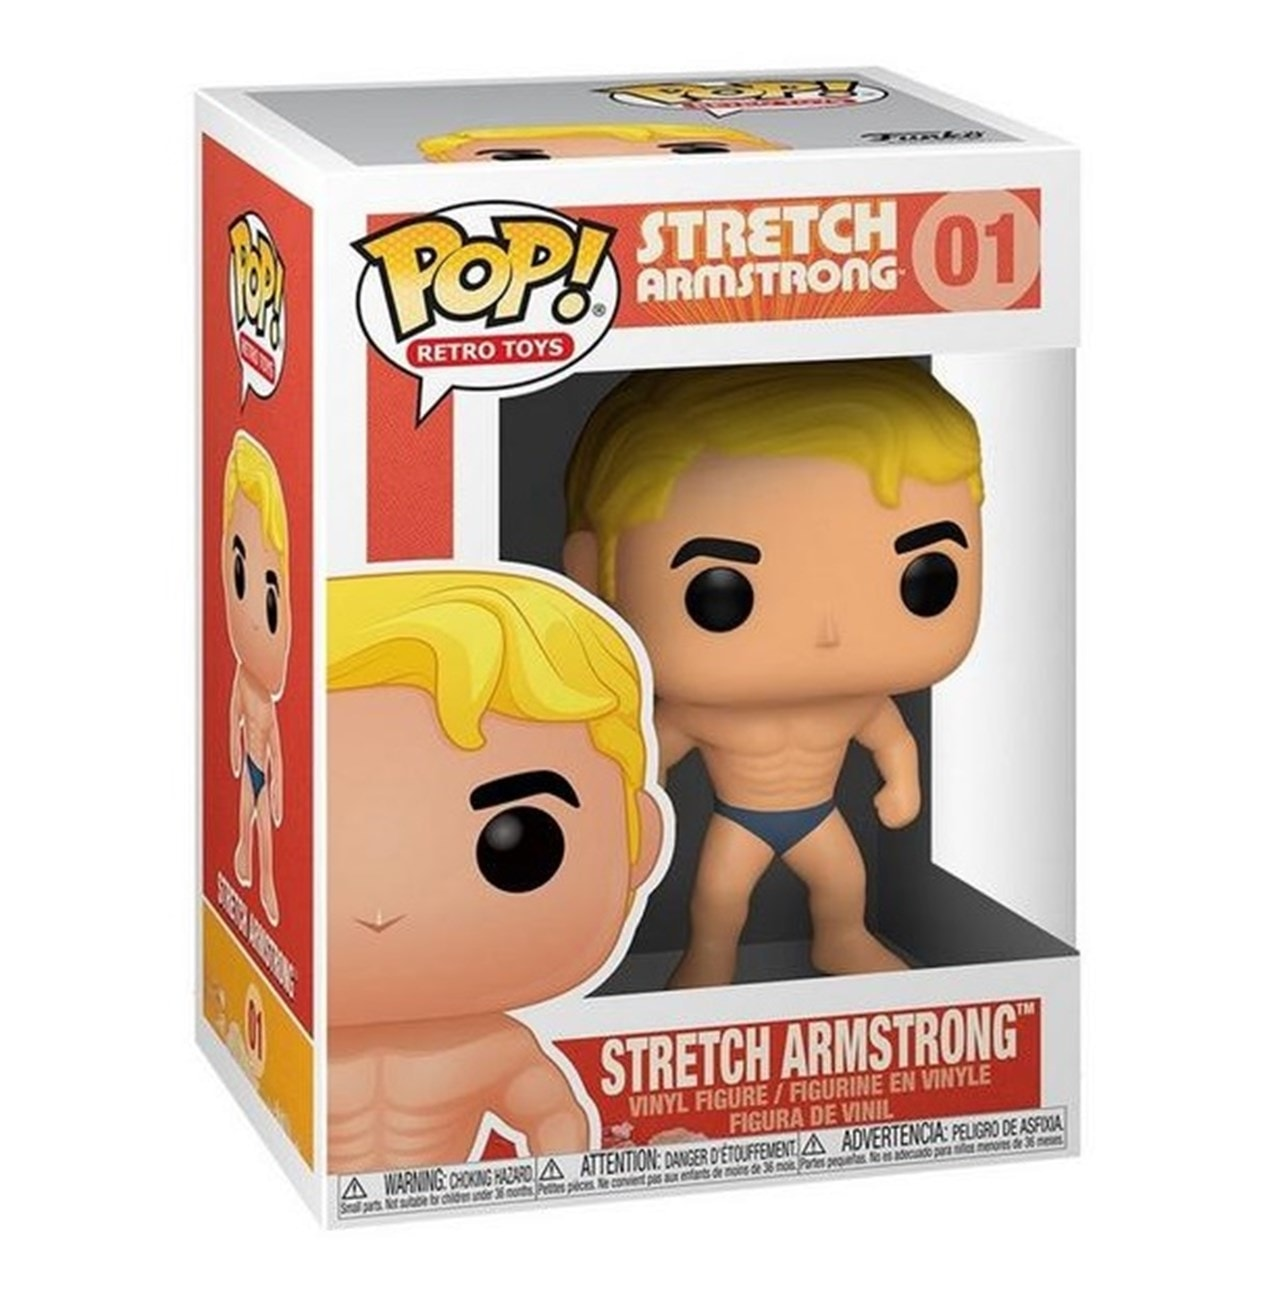 Stretch Armstrong (01) Hasbro Pop Vinyl (with Stretched Arms Chase) - 2